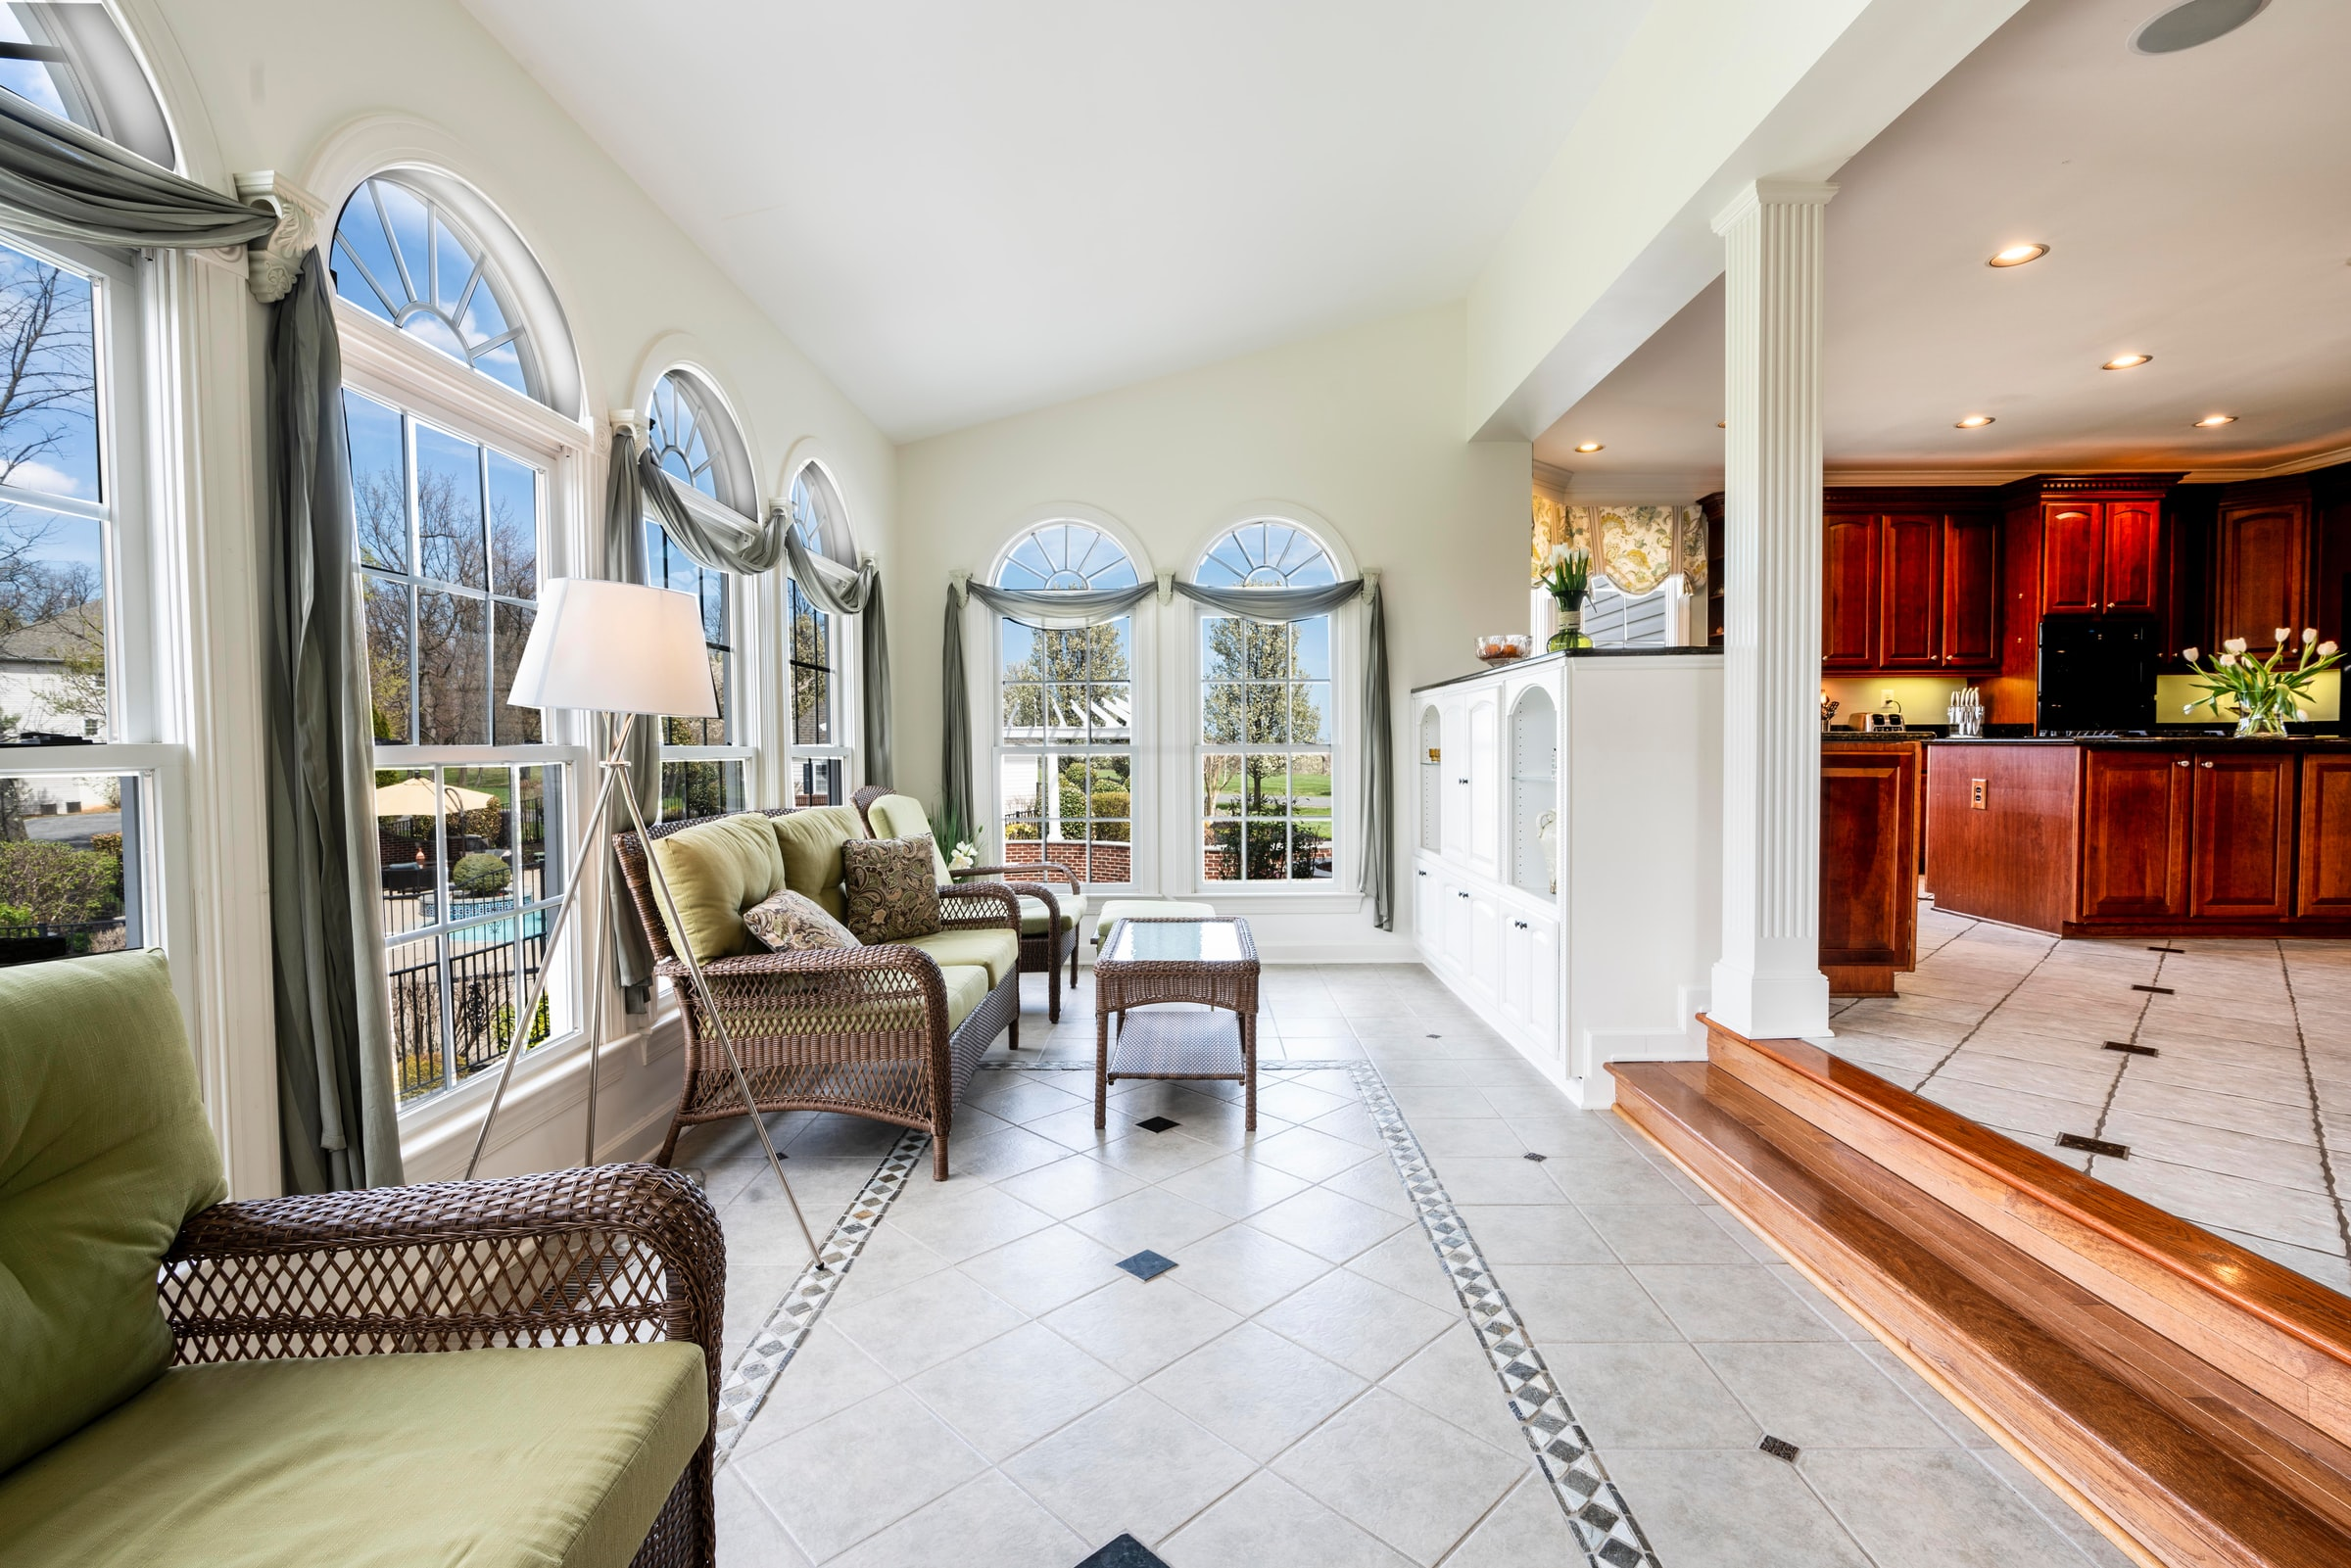 7 Pro Tips to Photograph Real Estate Interiors With Bright Windows